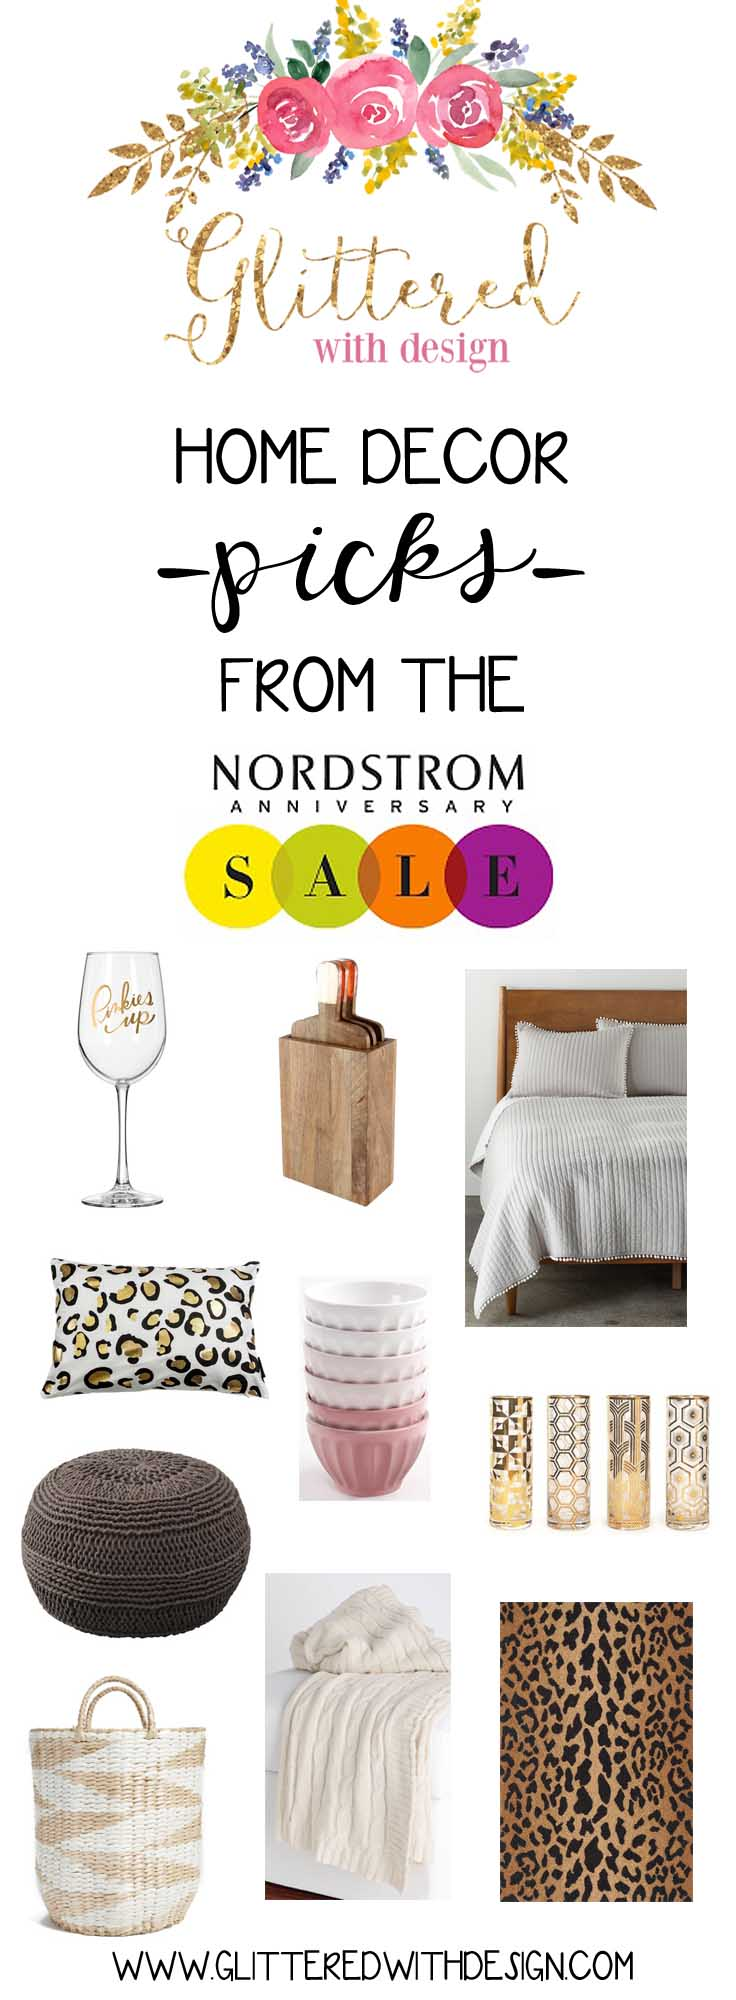 nordstrom sale home items - Glittered with Design